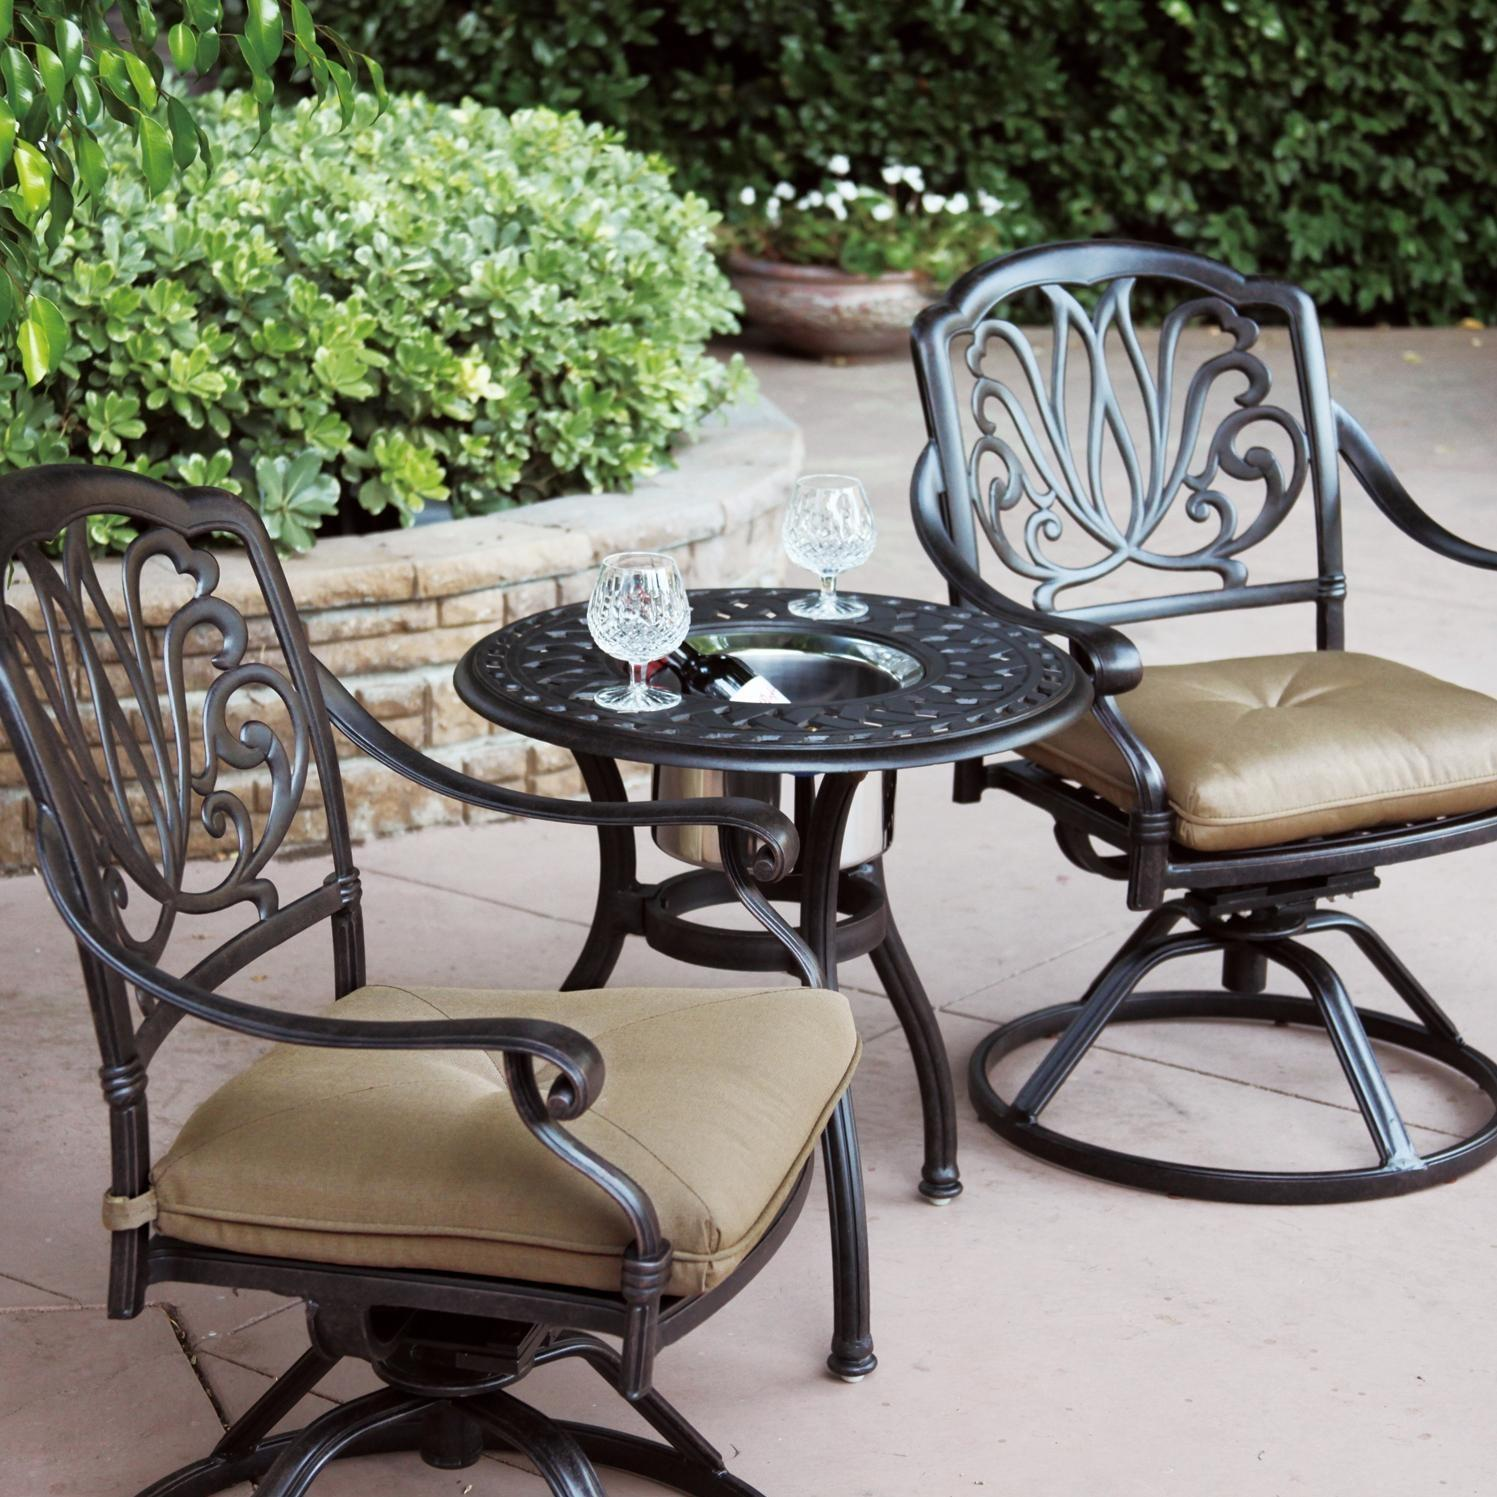 Darlee Elisabeth 3 Piece Cast Aluminum Patio Bistro Set With Swivel Rocker  Chairs - End Table With Ice Bucket Insert : BBQ Guys